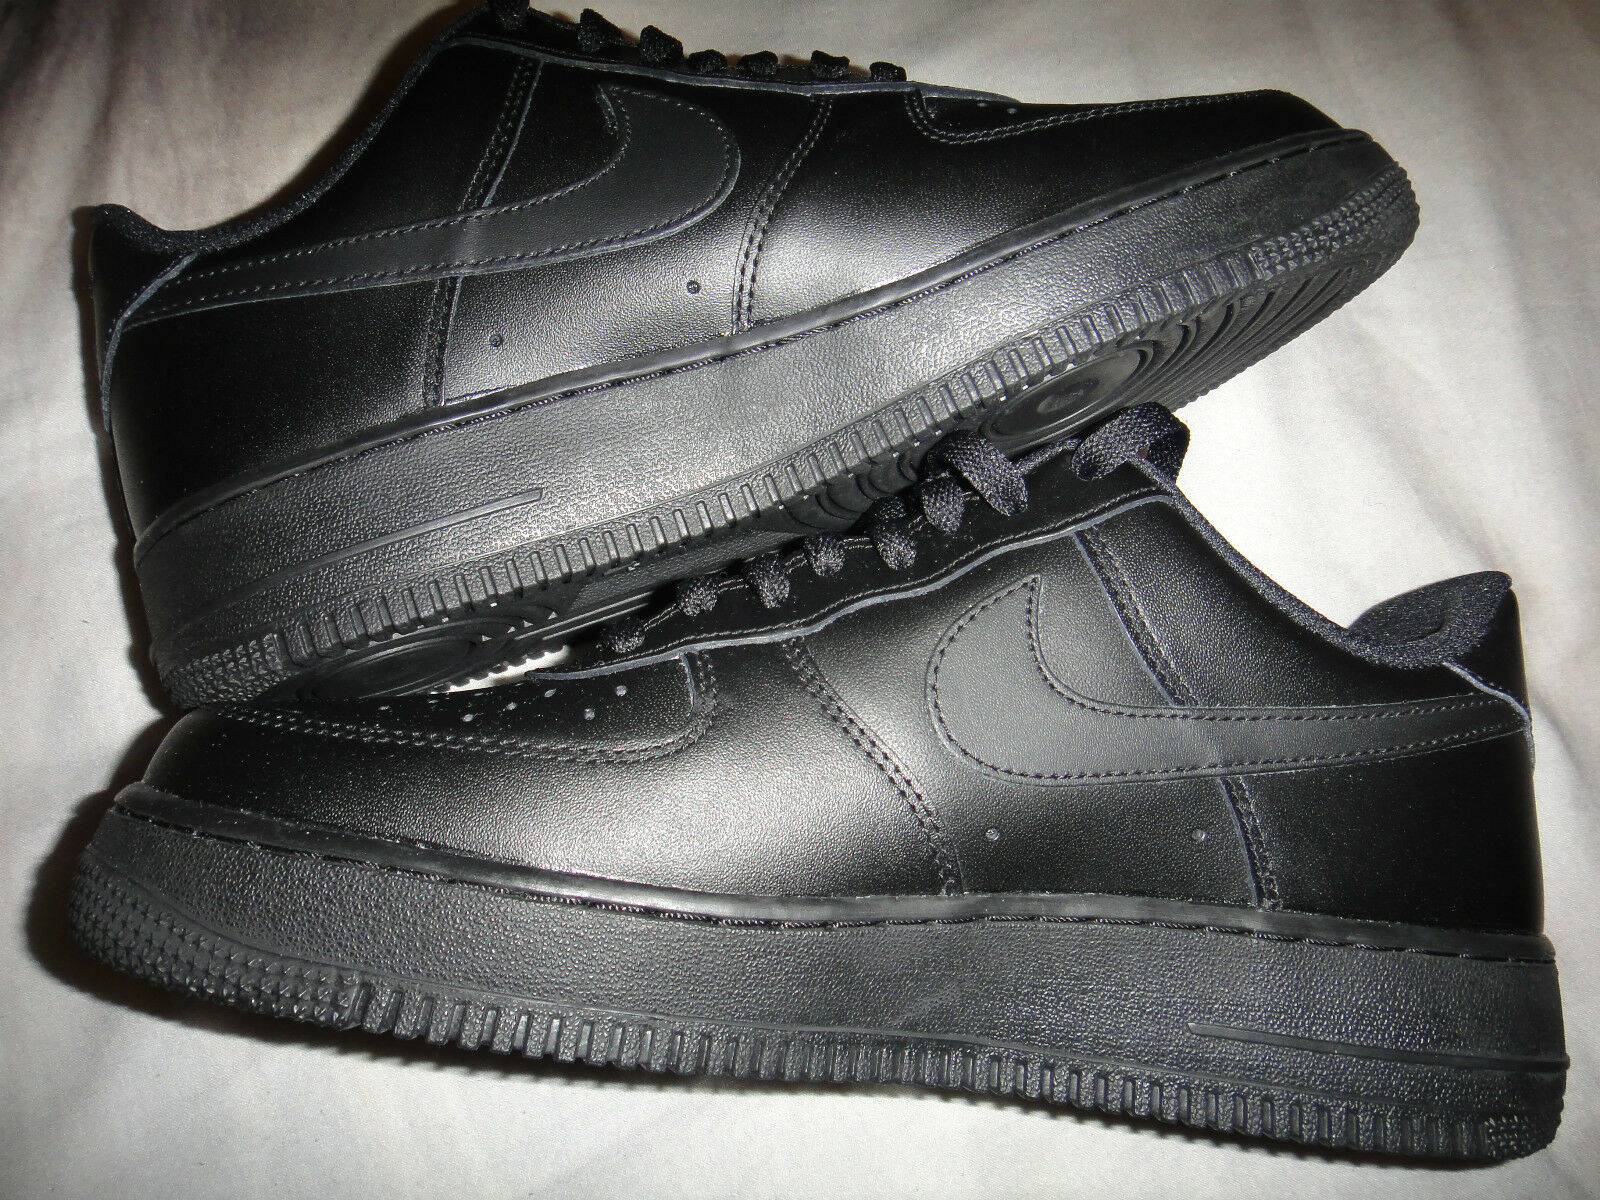 Nike Air Force 1 Low Noir Basketball Chaussures